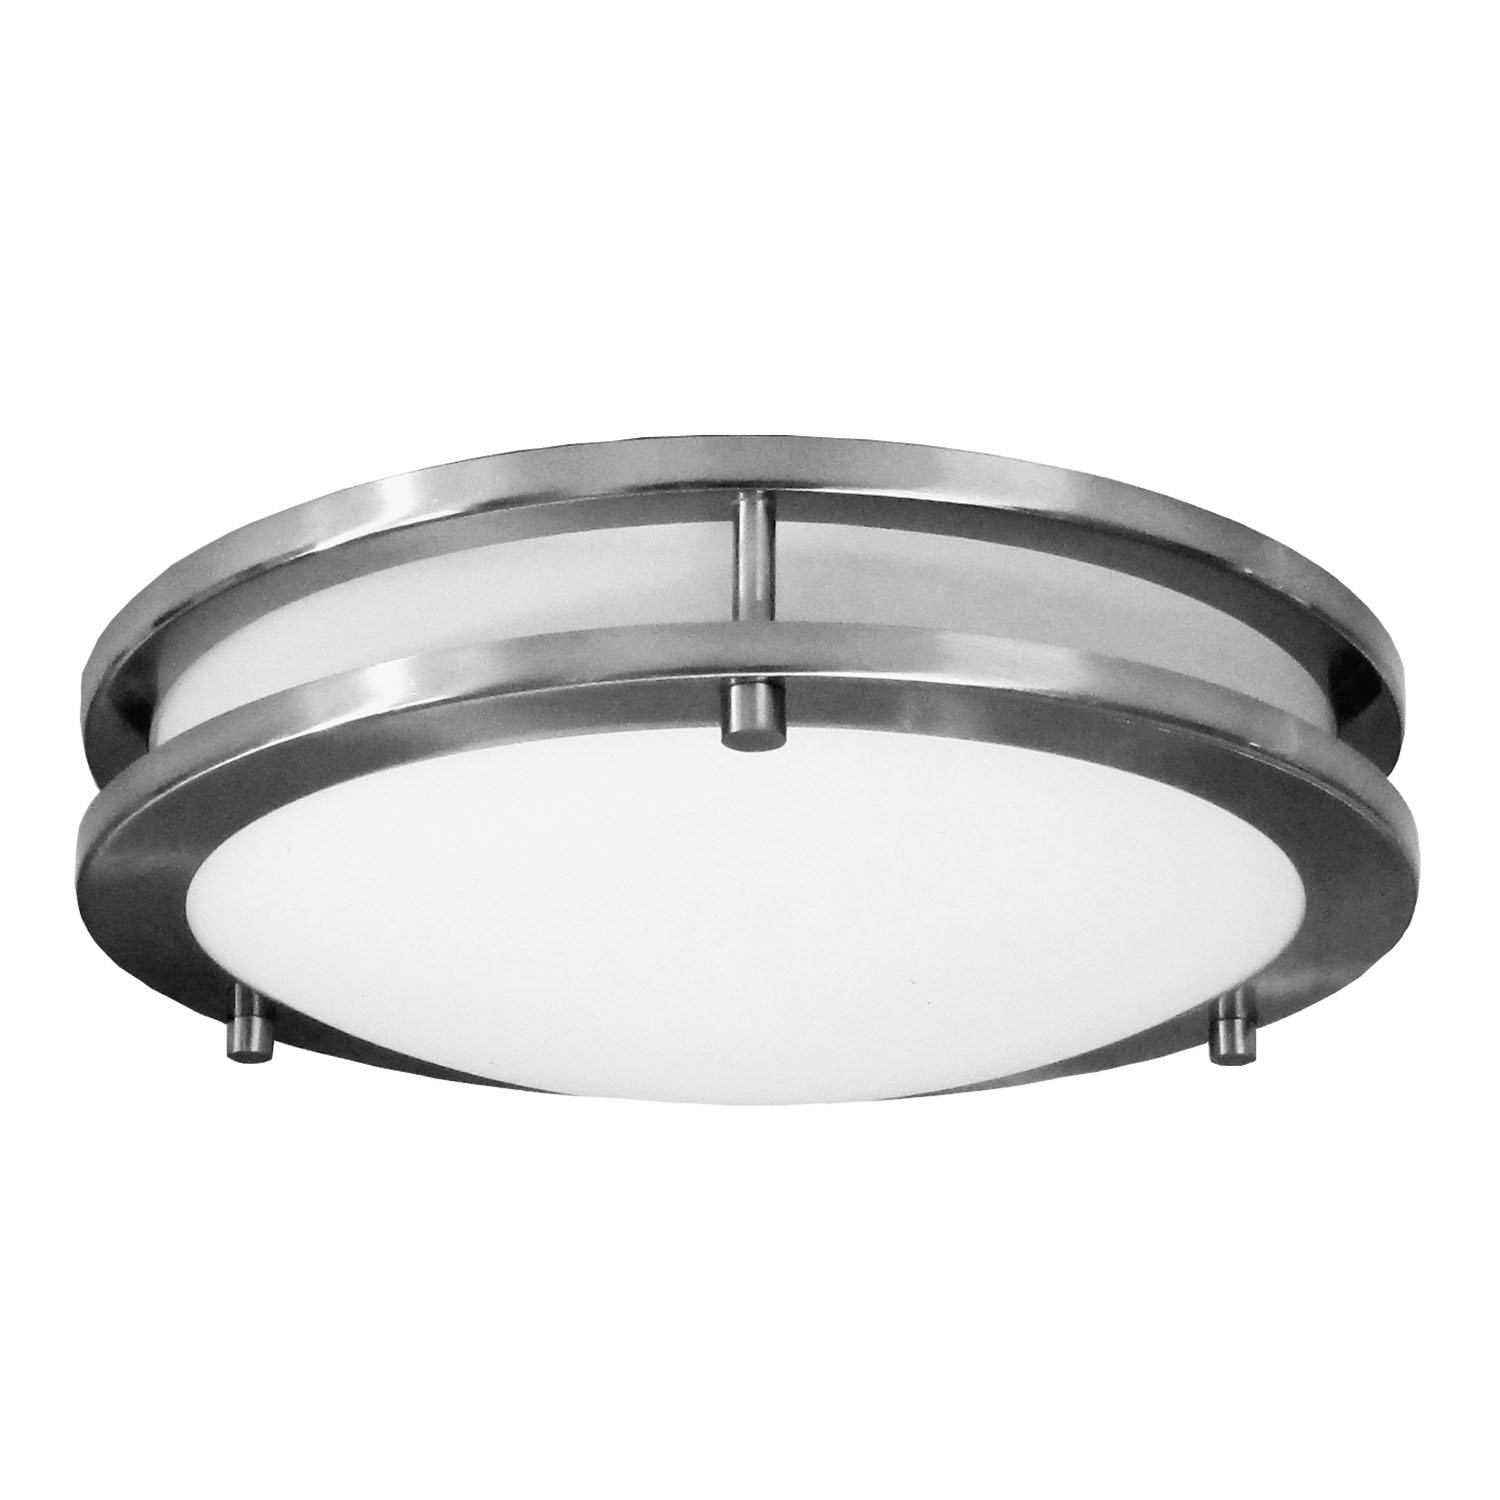 nickel light fixtures bathroom homeselects 6106 flush mount ceiling light brushed nickel with opal glass globe 16